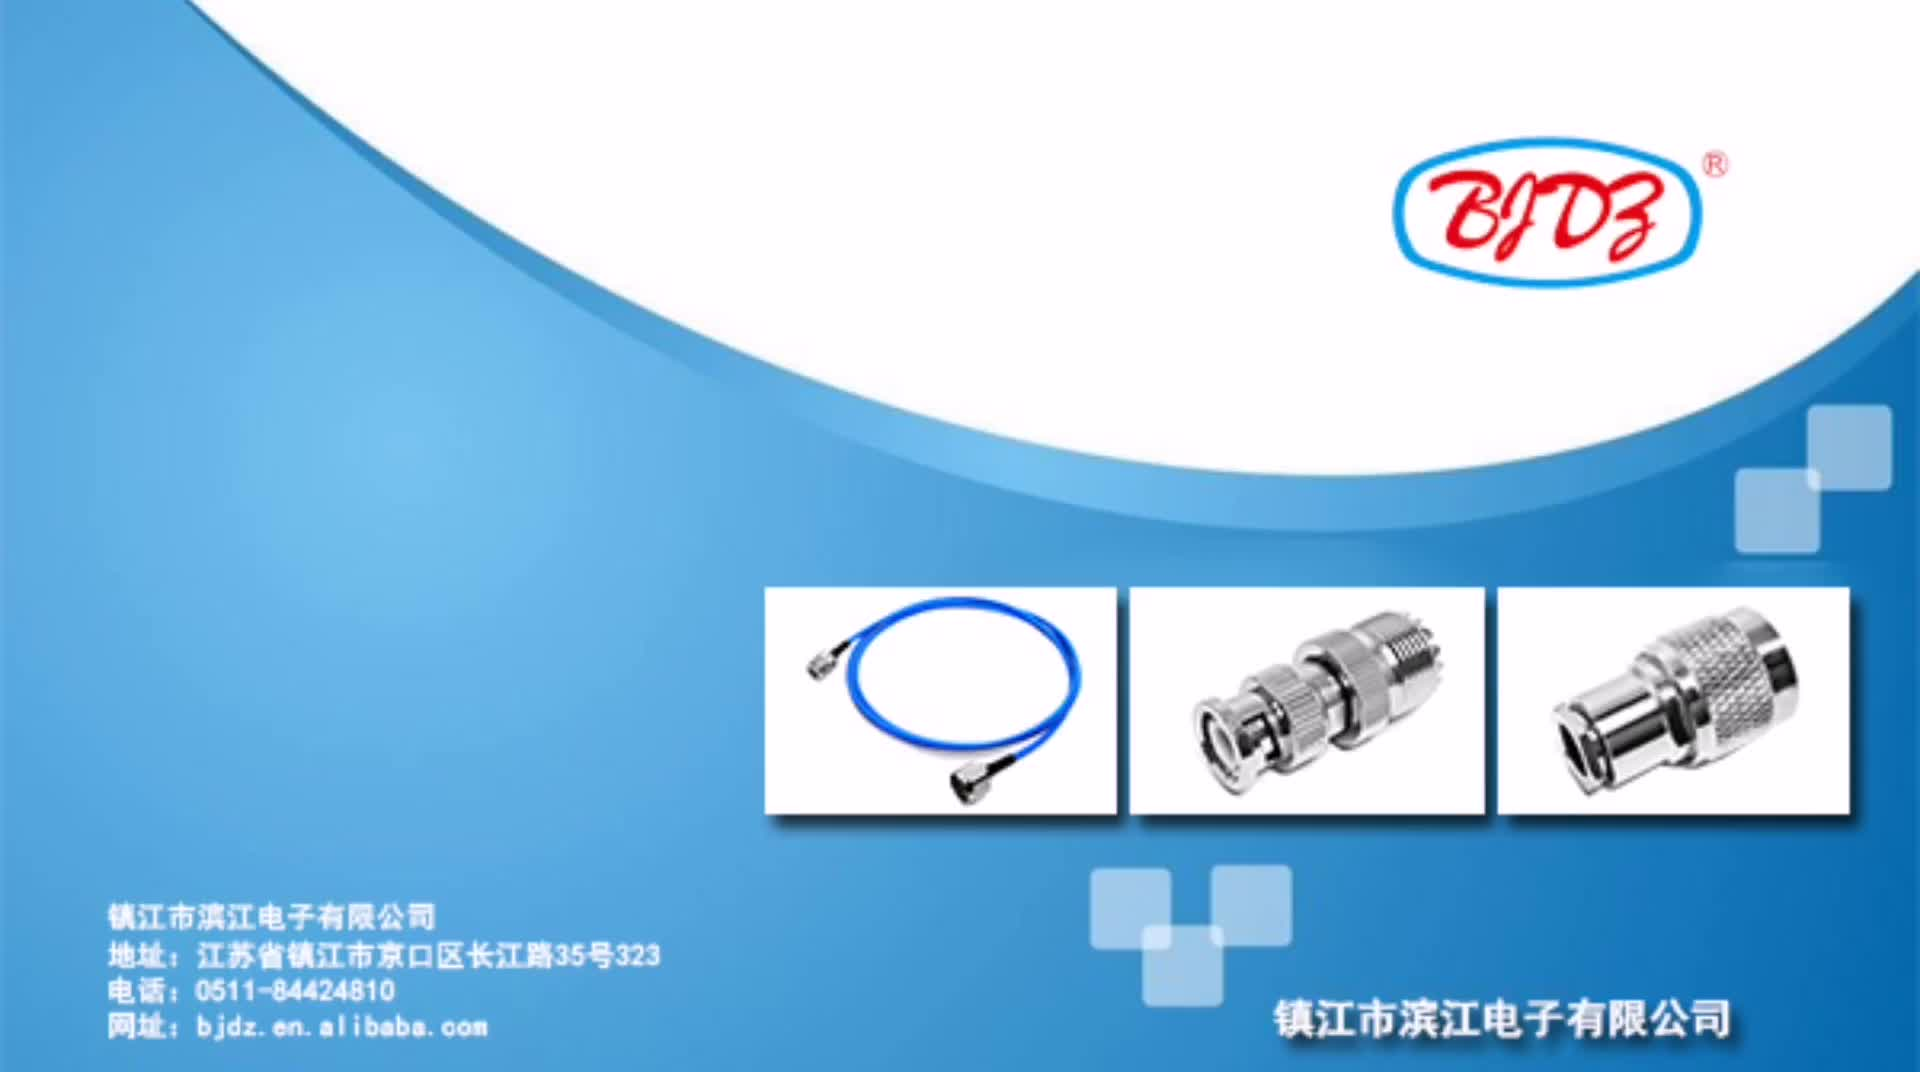 RF coaxial high frequency 2.4mm female plug to 2.92mm male plug connector adaptor